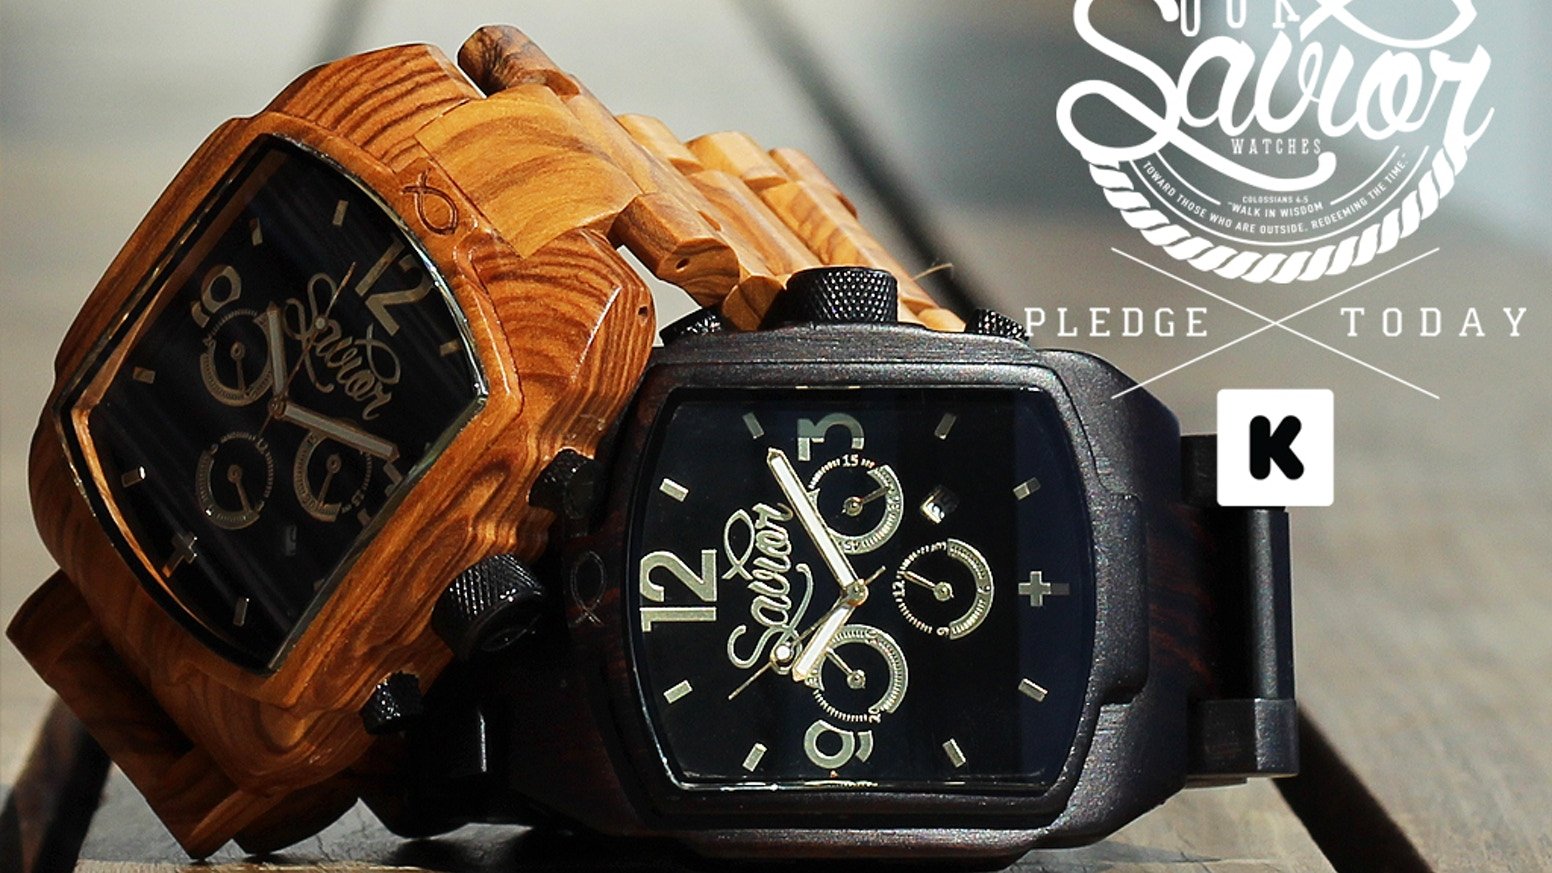 Premium Biblical Wood Hand-Picked From Israel & Designed in USA